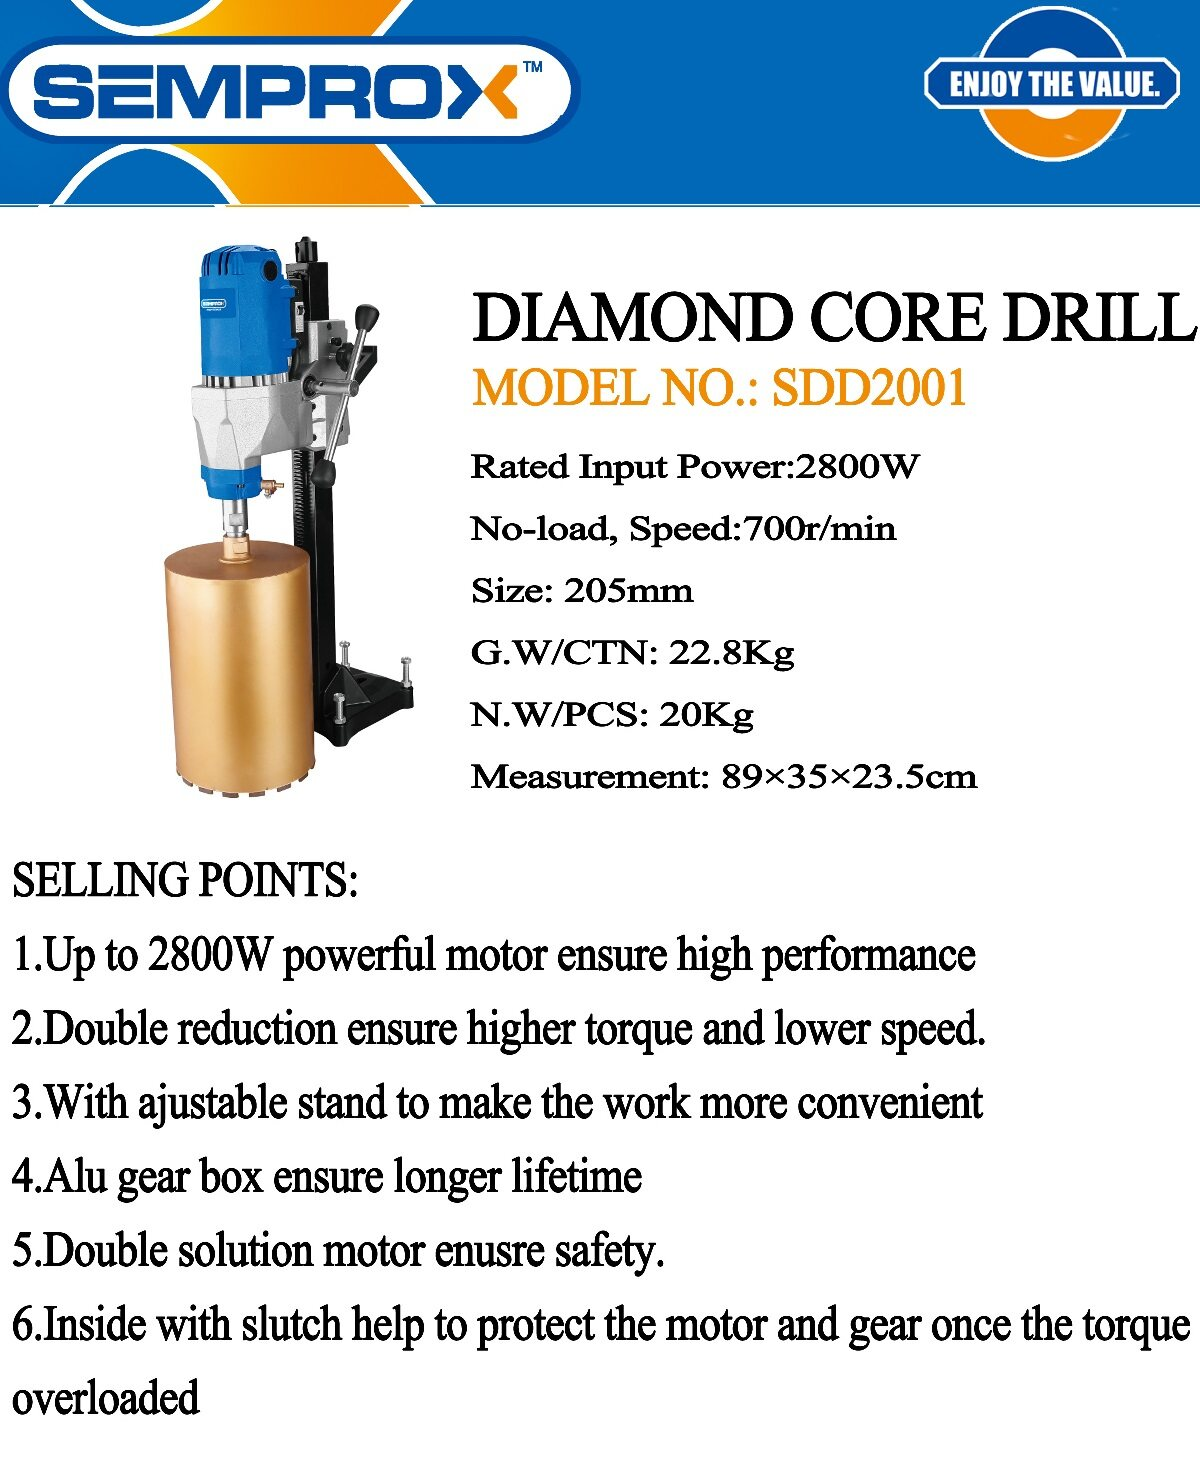 diamond core coring drill level lift jack power tool motor electric wire machine concrete rock stone sand wall metal stand bit drilling grinder grinding set drive handle hold holder holding cut cutter cutting high press strong wall concrete rock